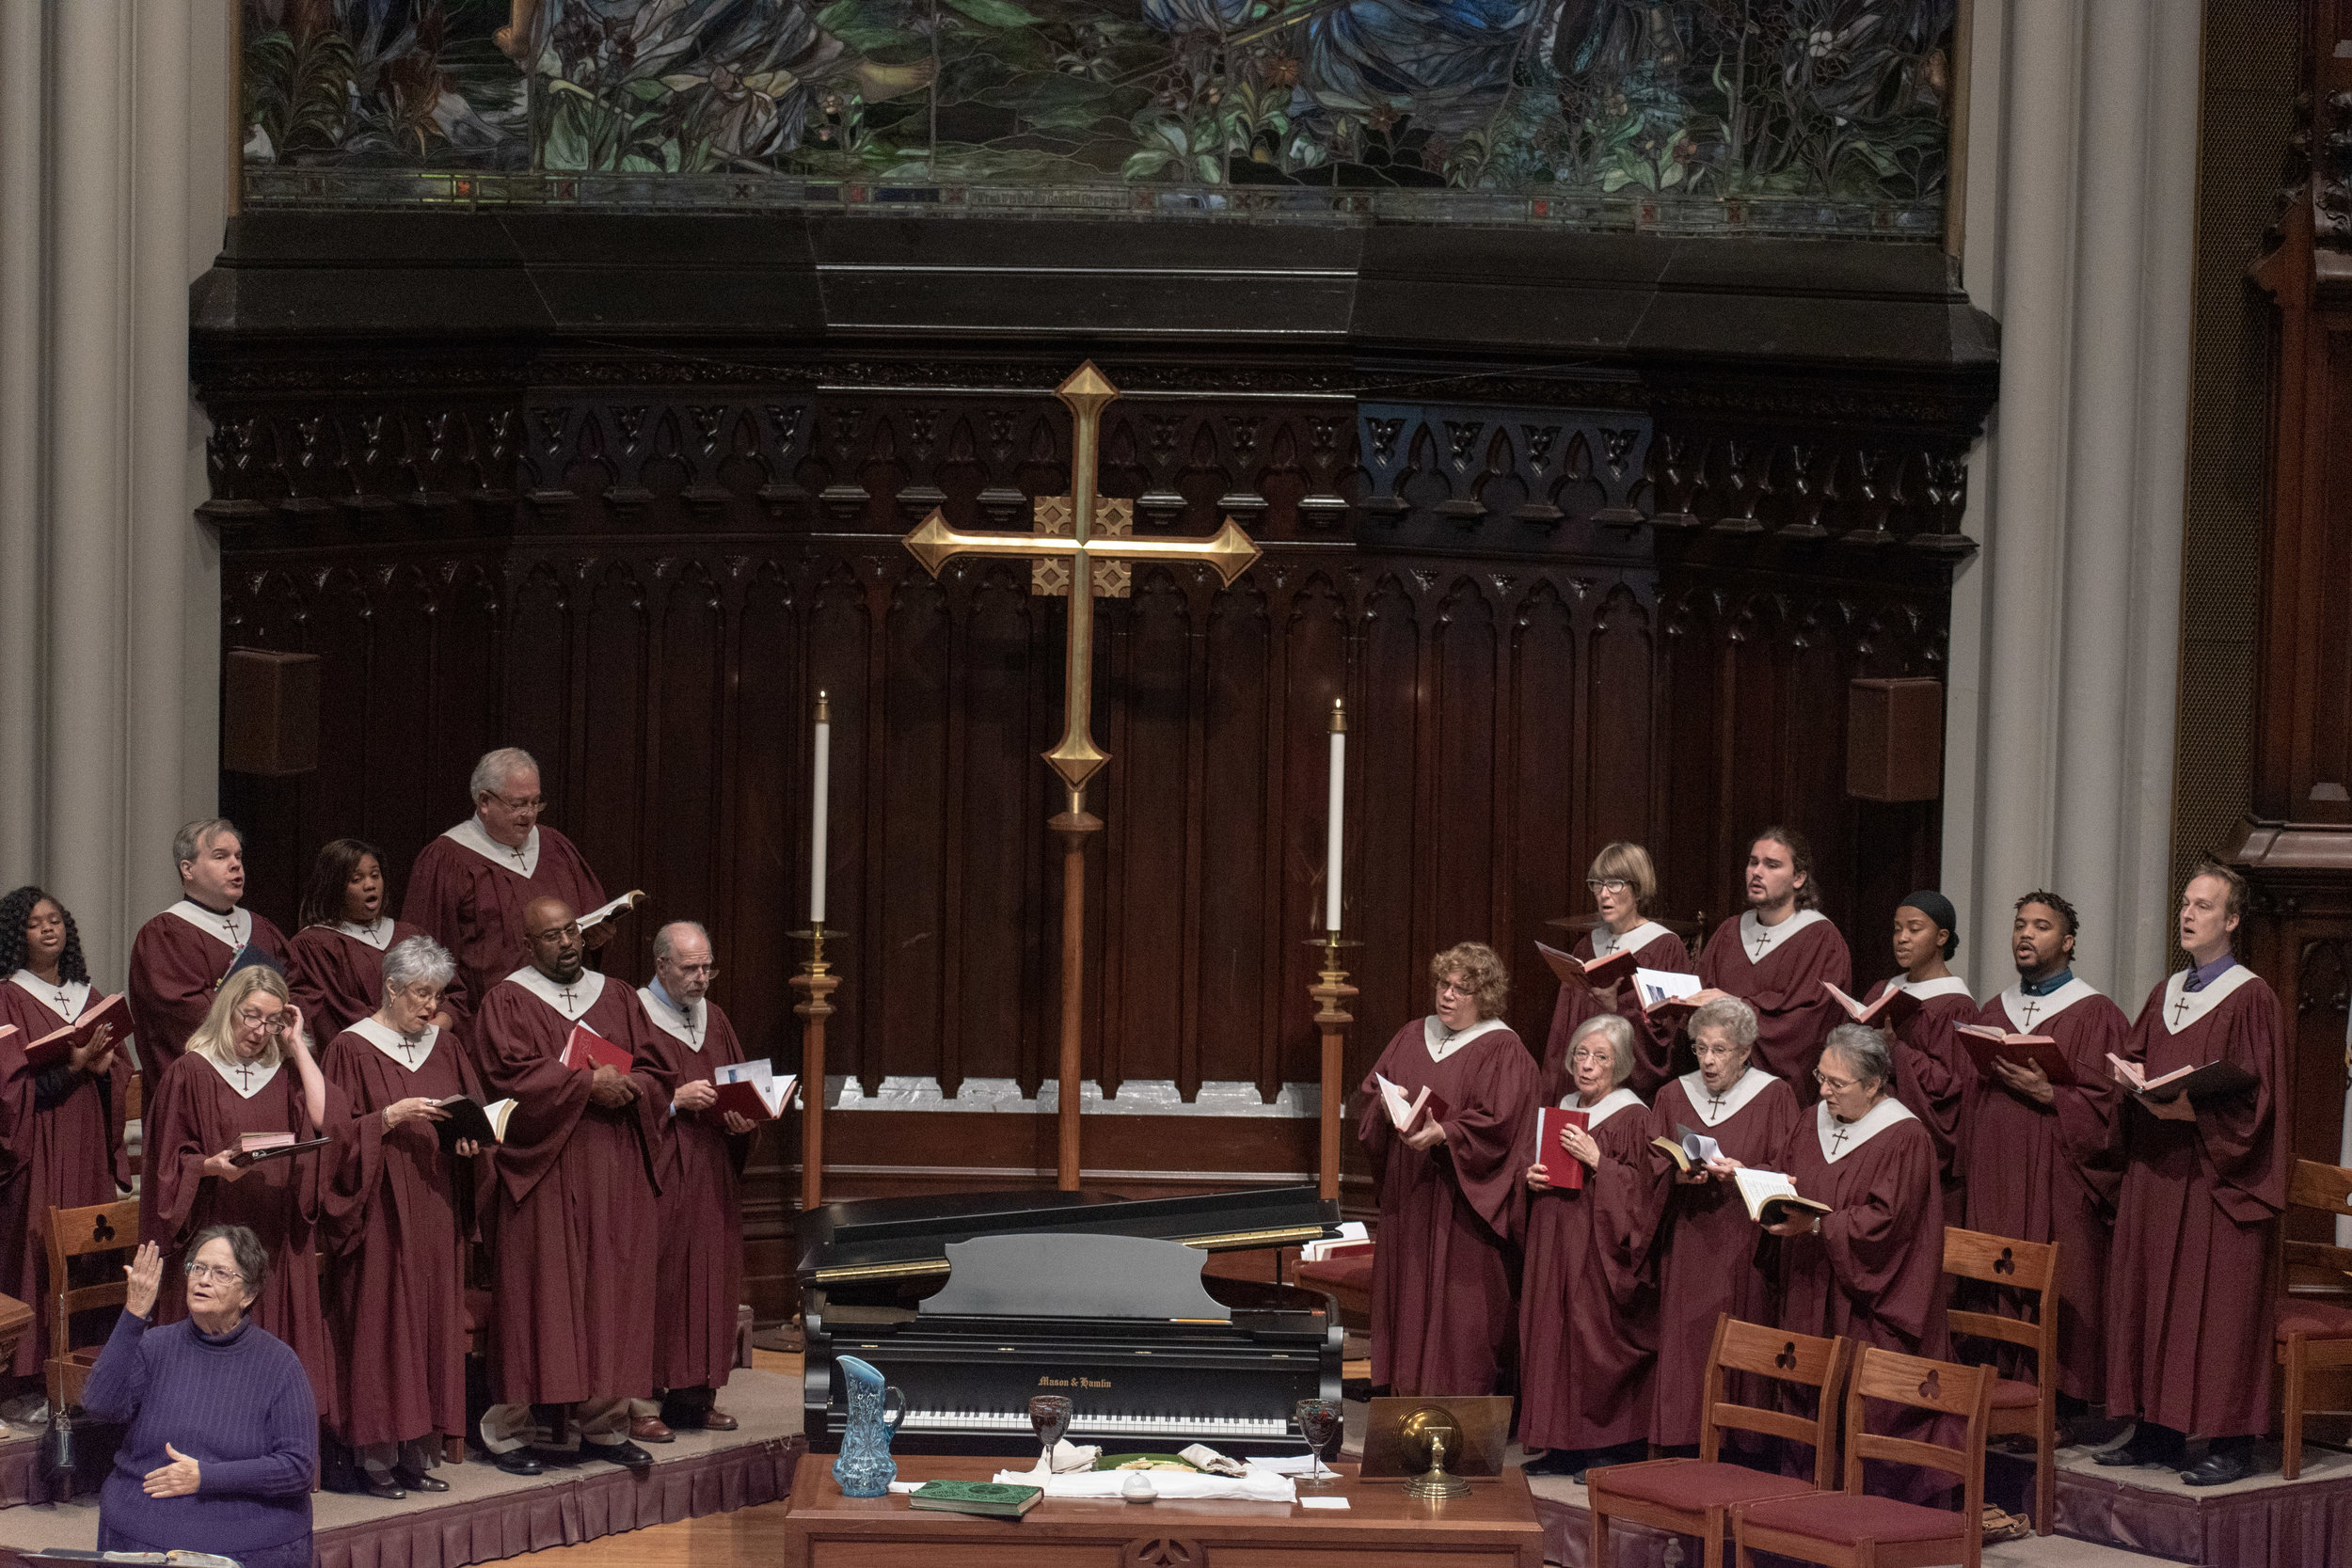 Grace Church Choir - Open to all youth in Grade 8 through adults, sings in worship weekly at 10:25am.